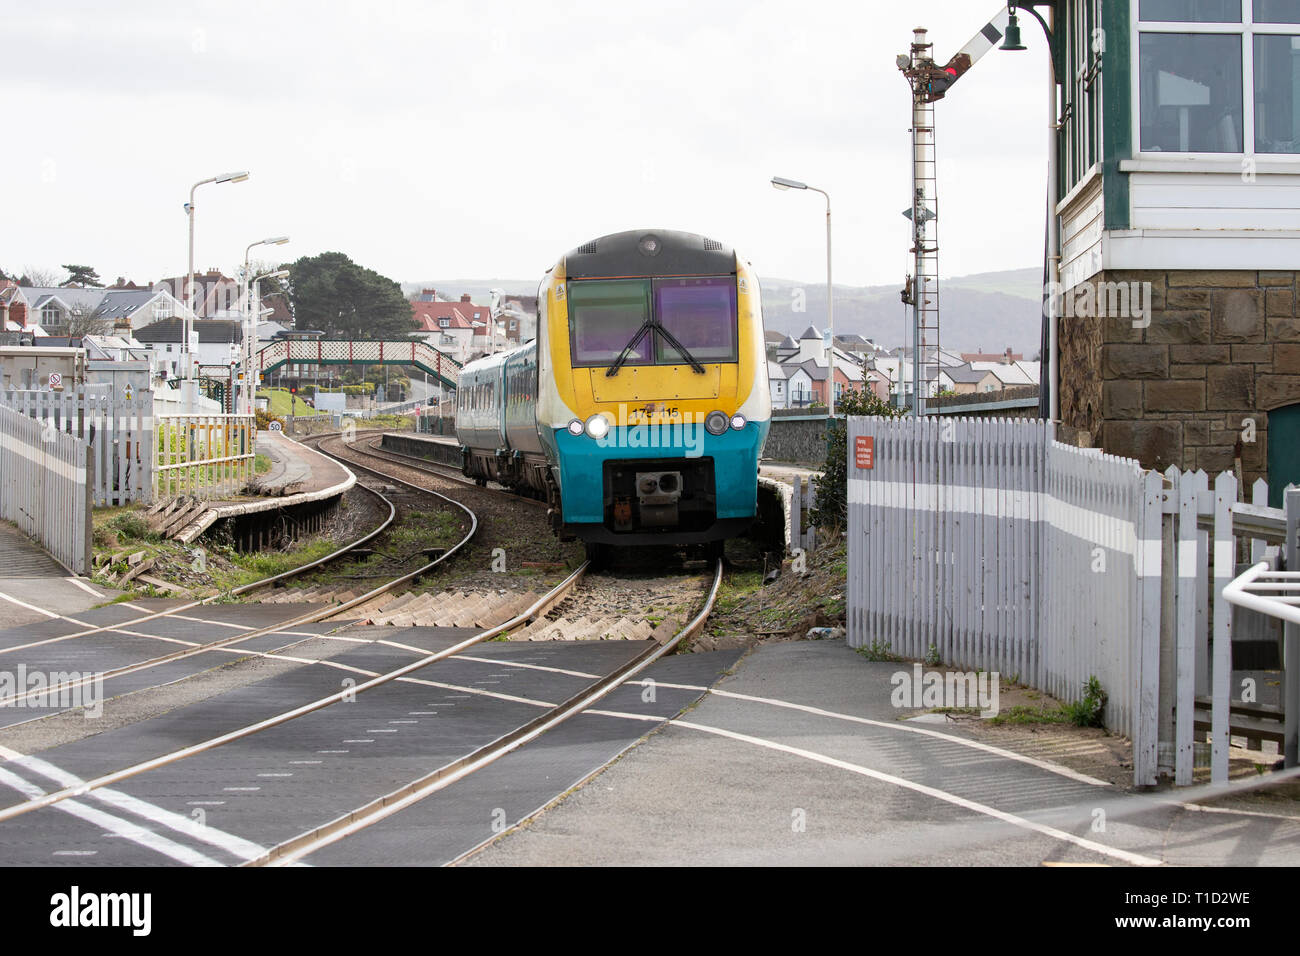 Diesel Multiple Unit Class 175 Coradia departing from Deganwy station, North Wales en route to Llandudno terminus - Stock Image